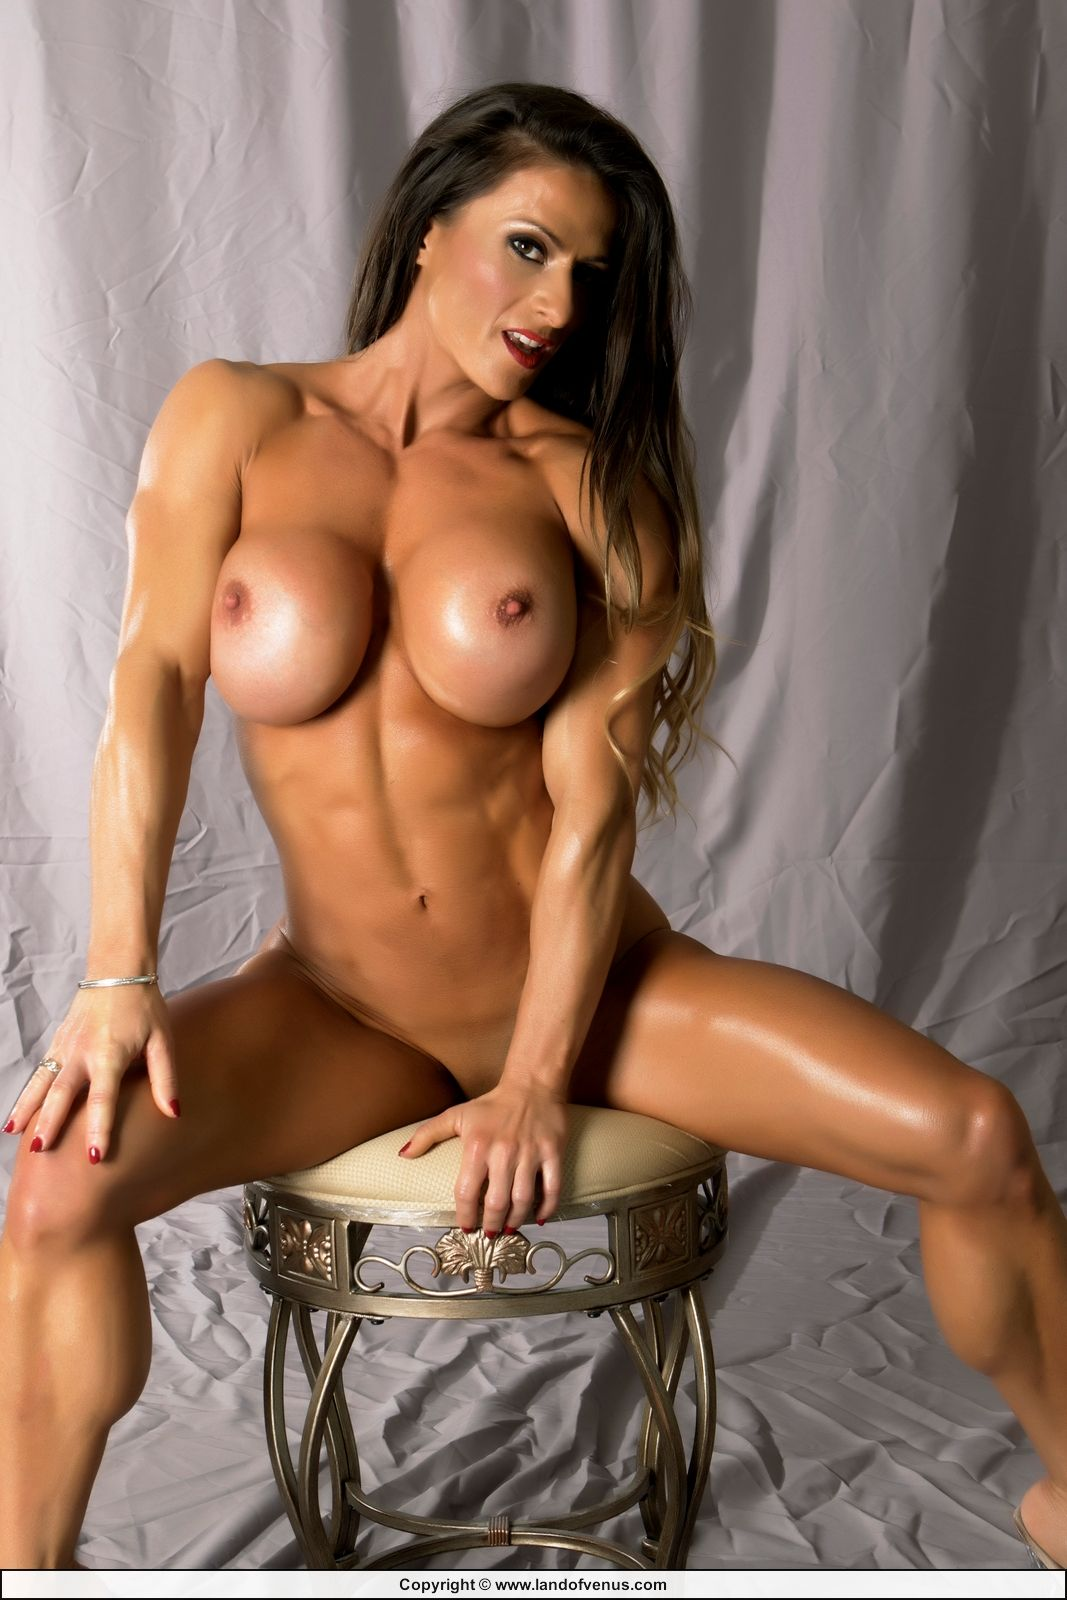 shirt-pictures-naked-woman-fitness-wet-pussy-your